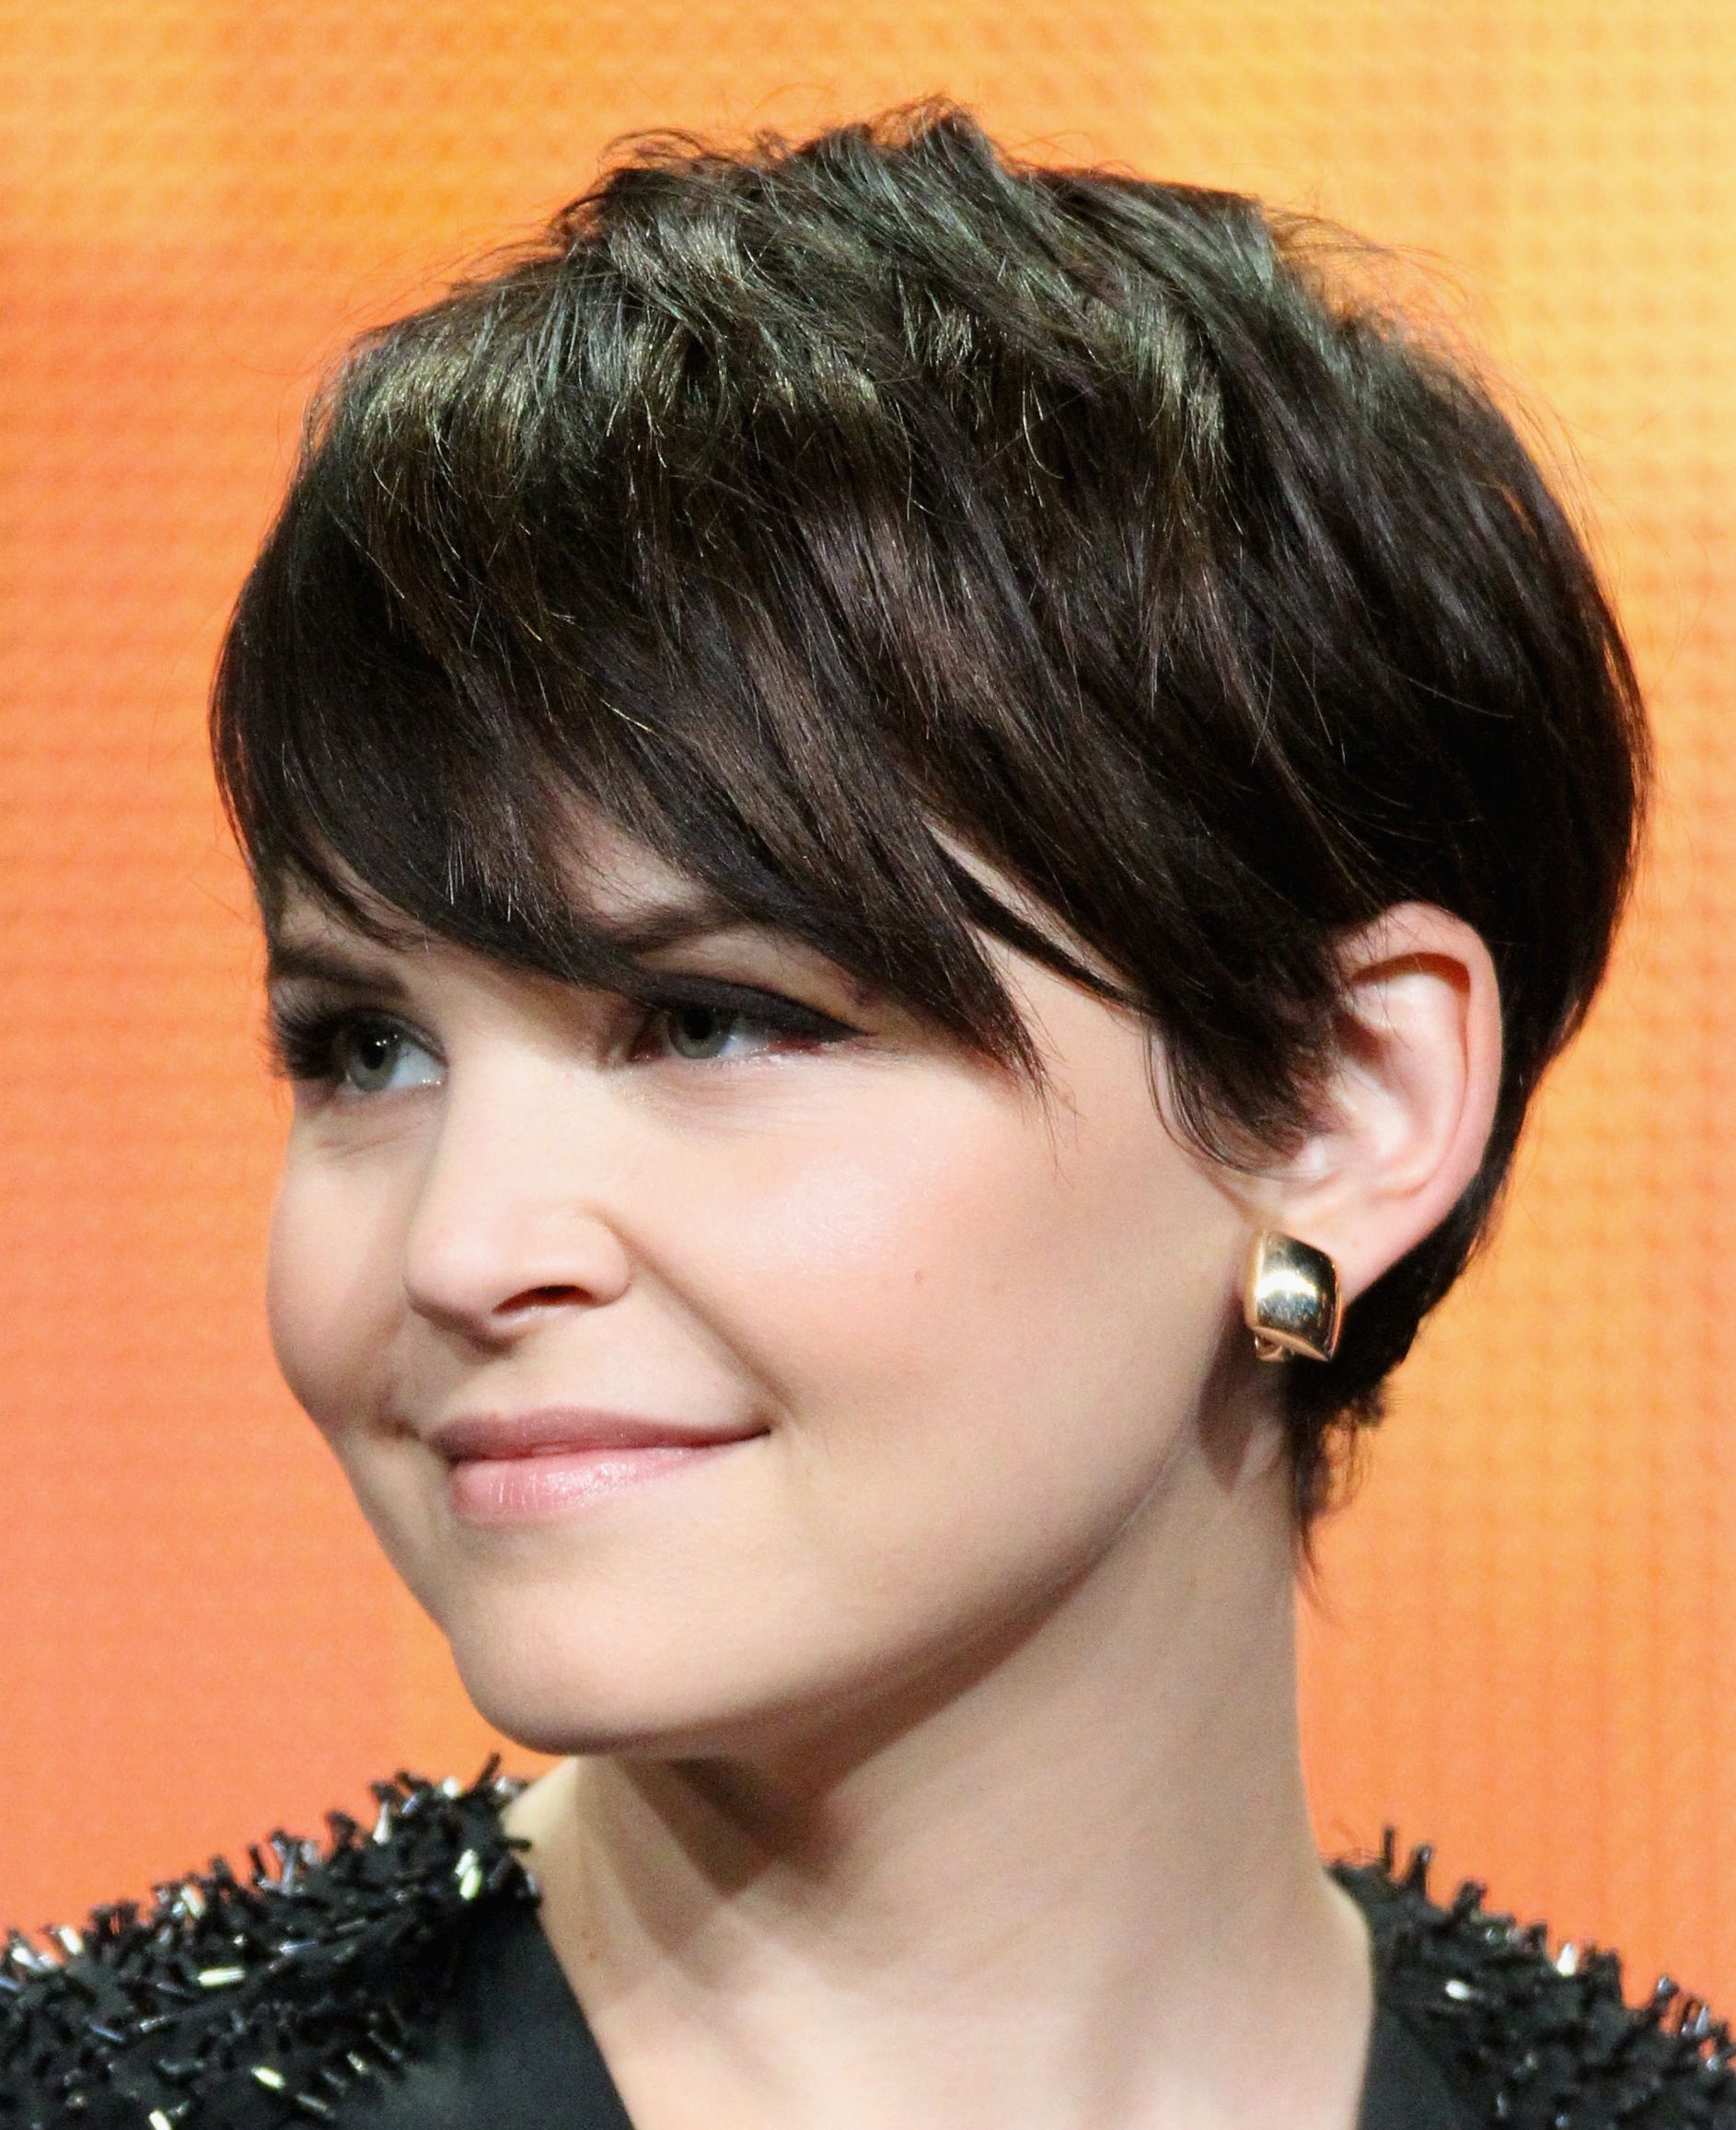 a gallery of short brown hair: from pixies to shags | short dark